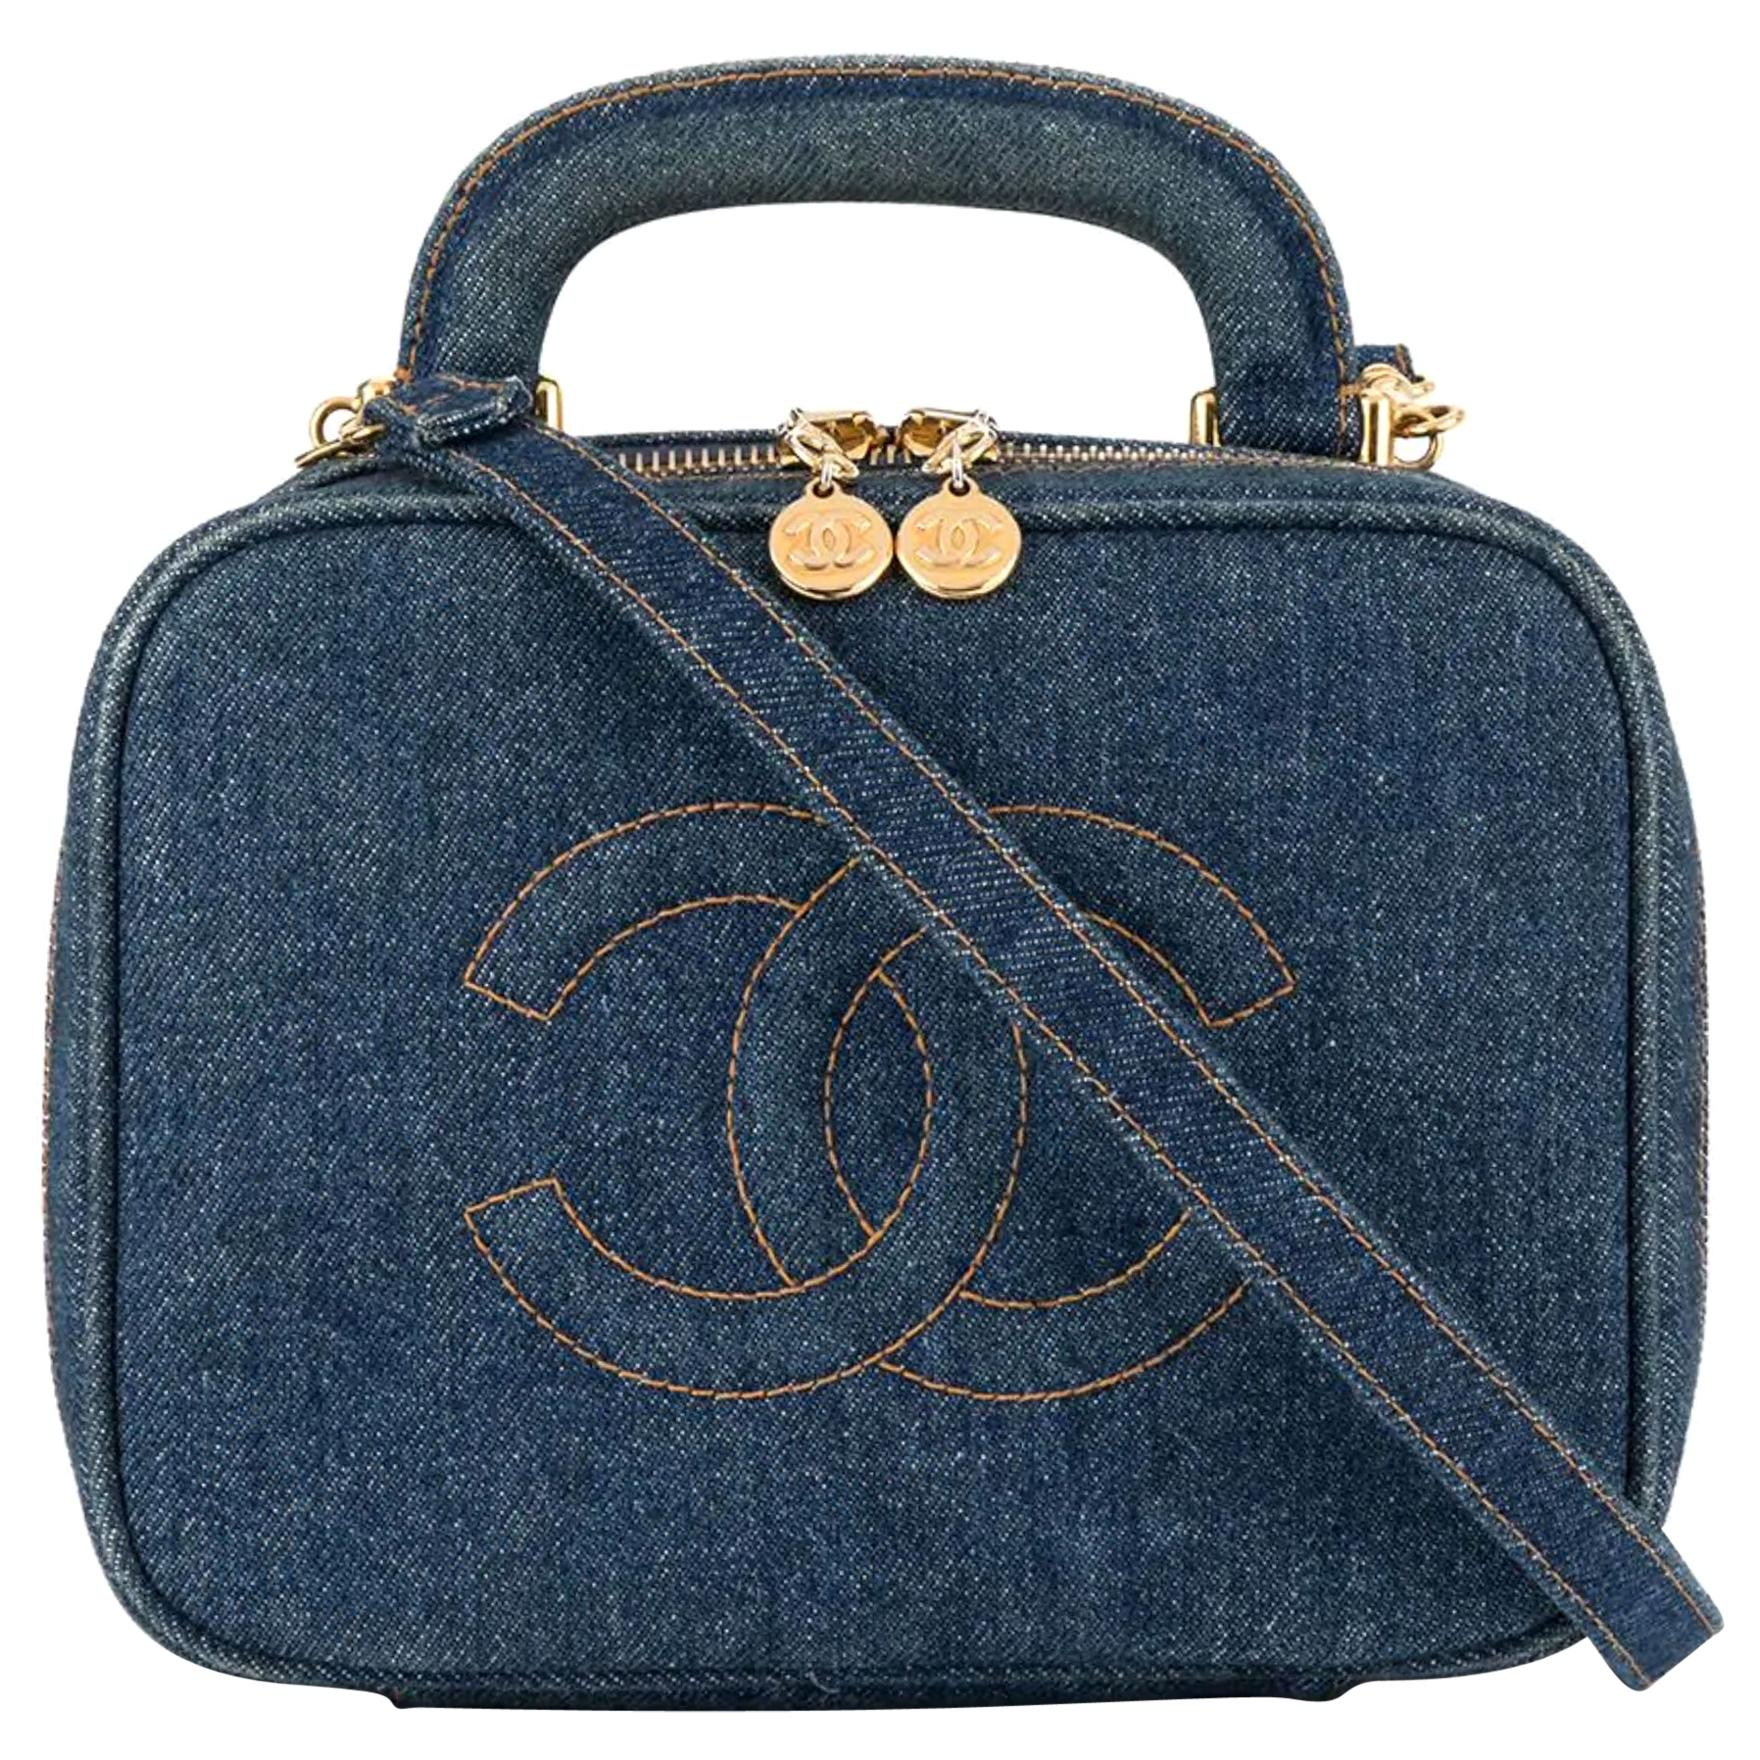 fba9608c0f73d6 Vintage Chanel: Bags, Clothing & More - 8,203 For Sale at 1stdibs